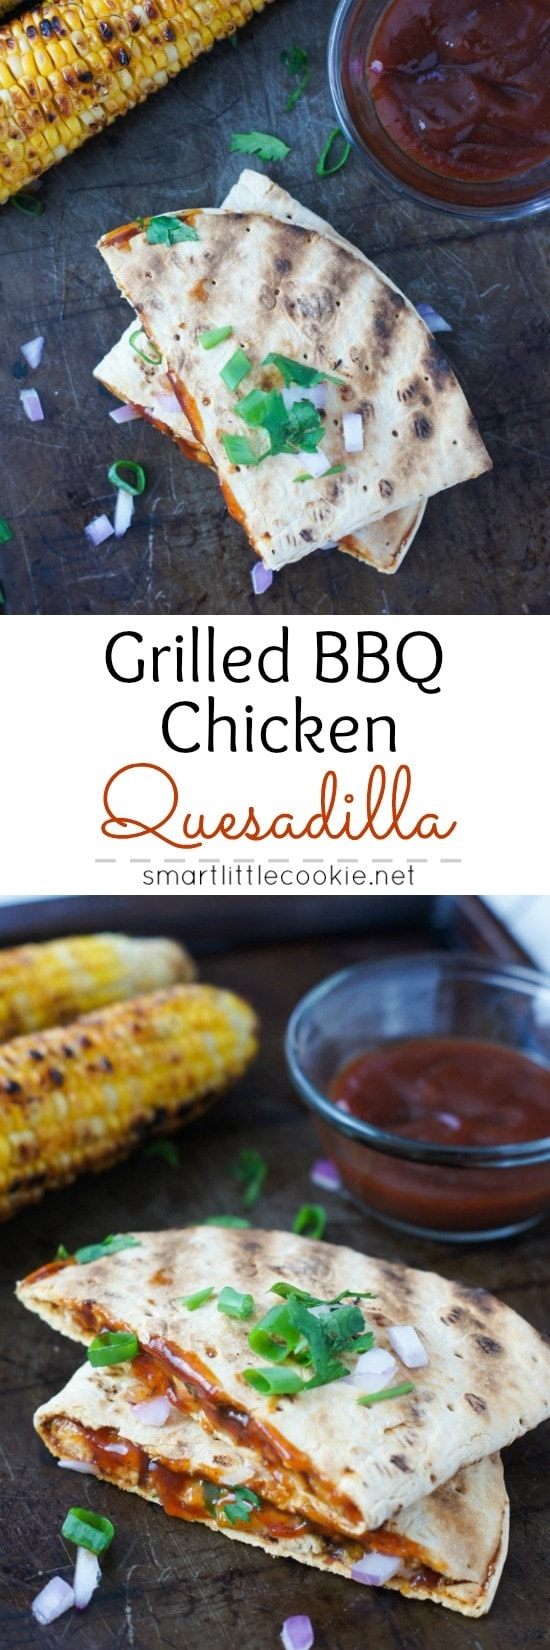 Grilled BBQ Chicken Quesadilla Pin Image